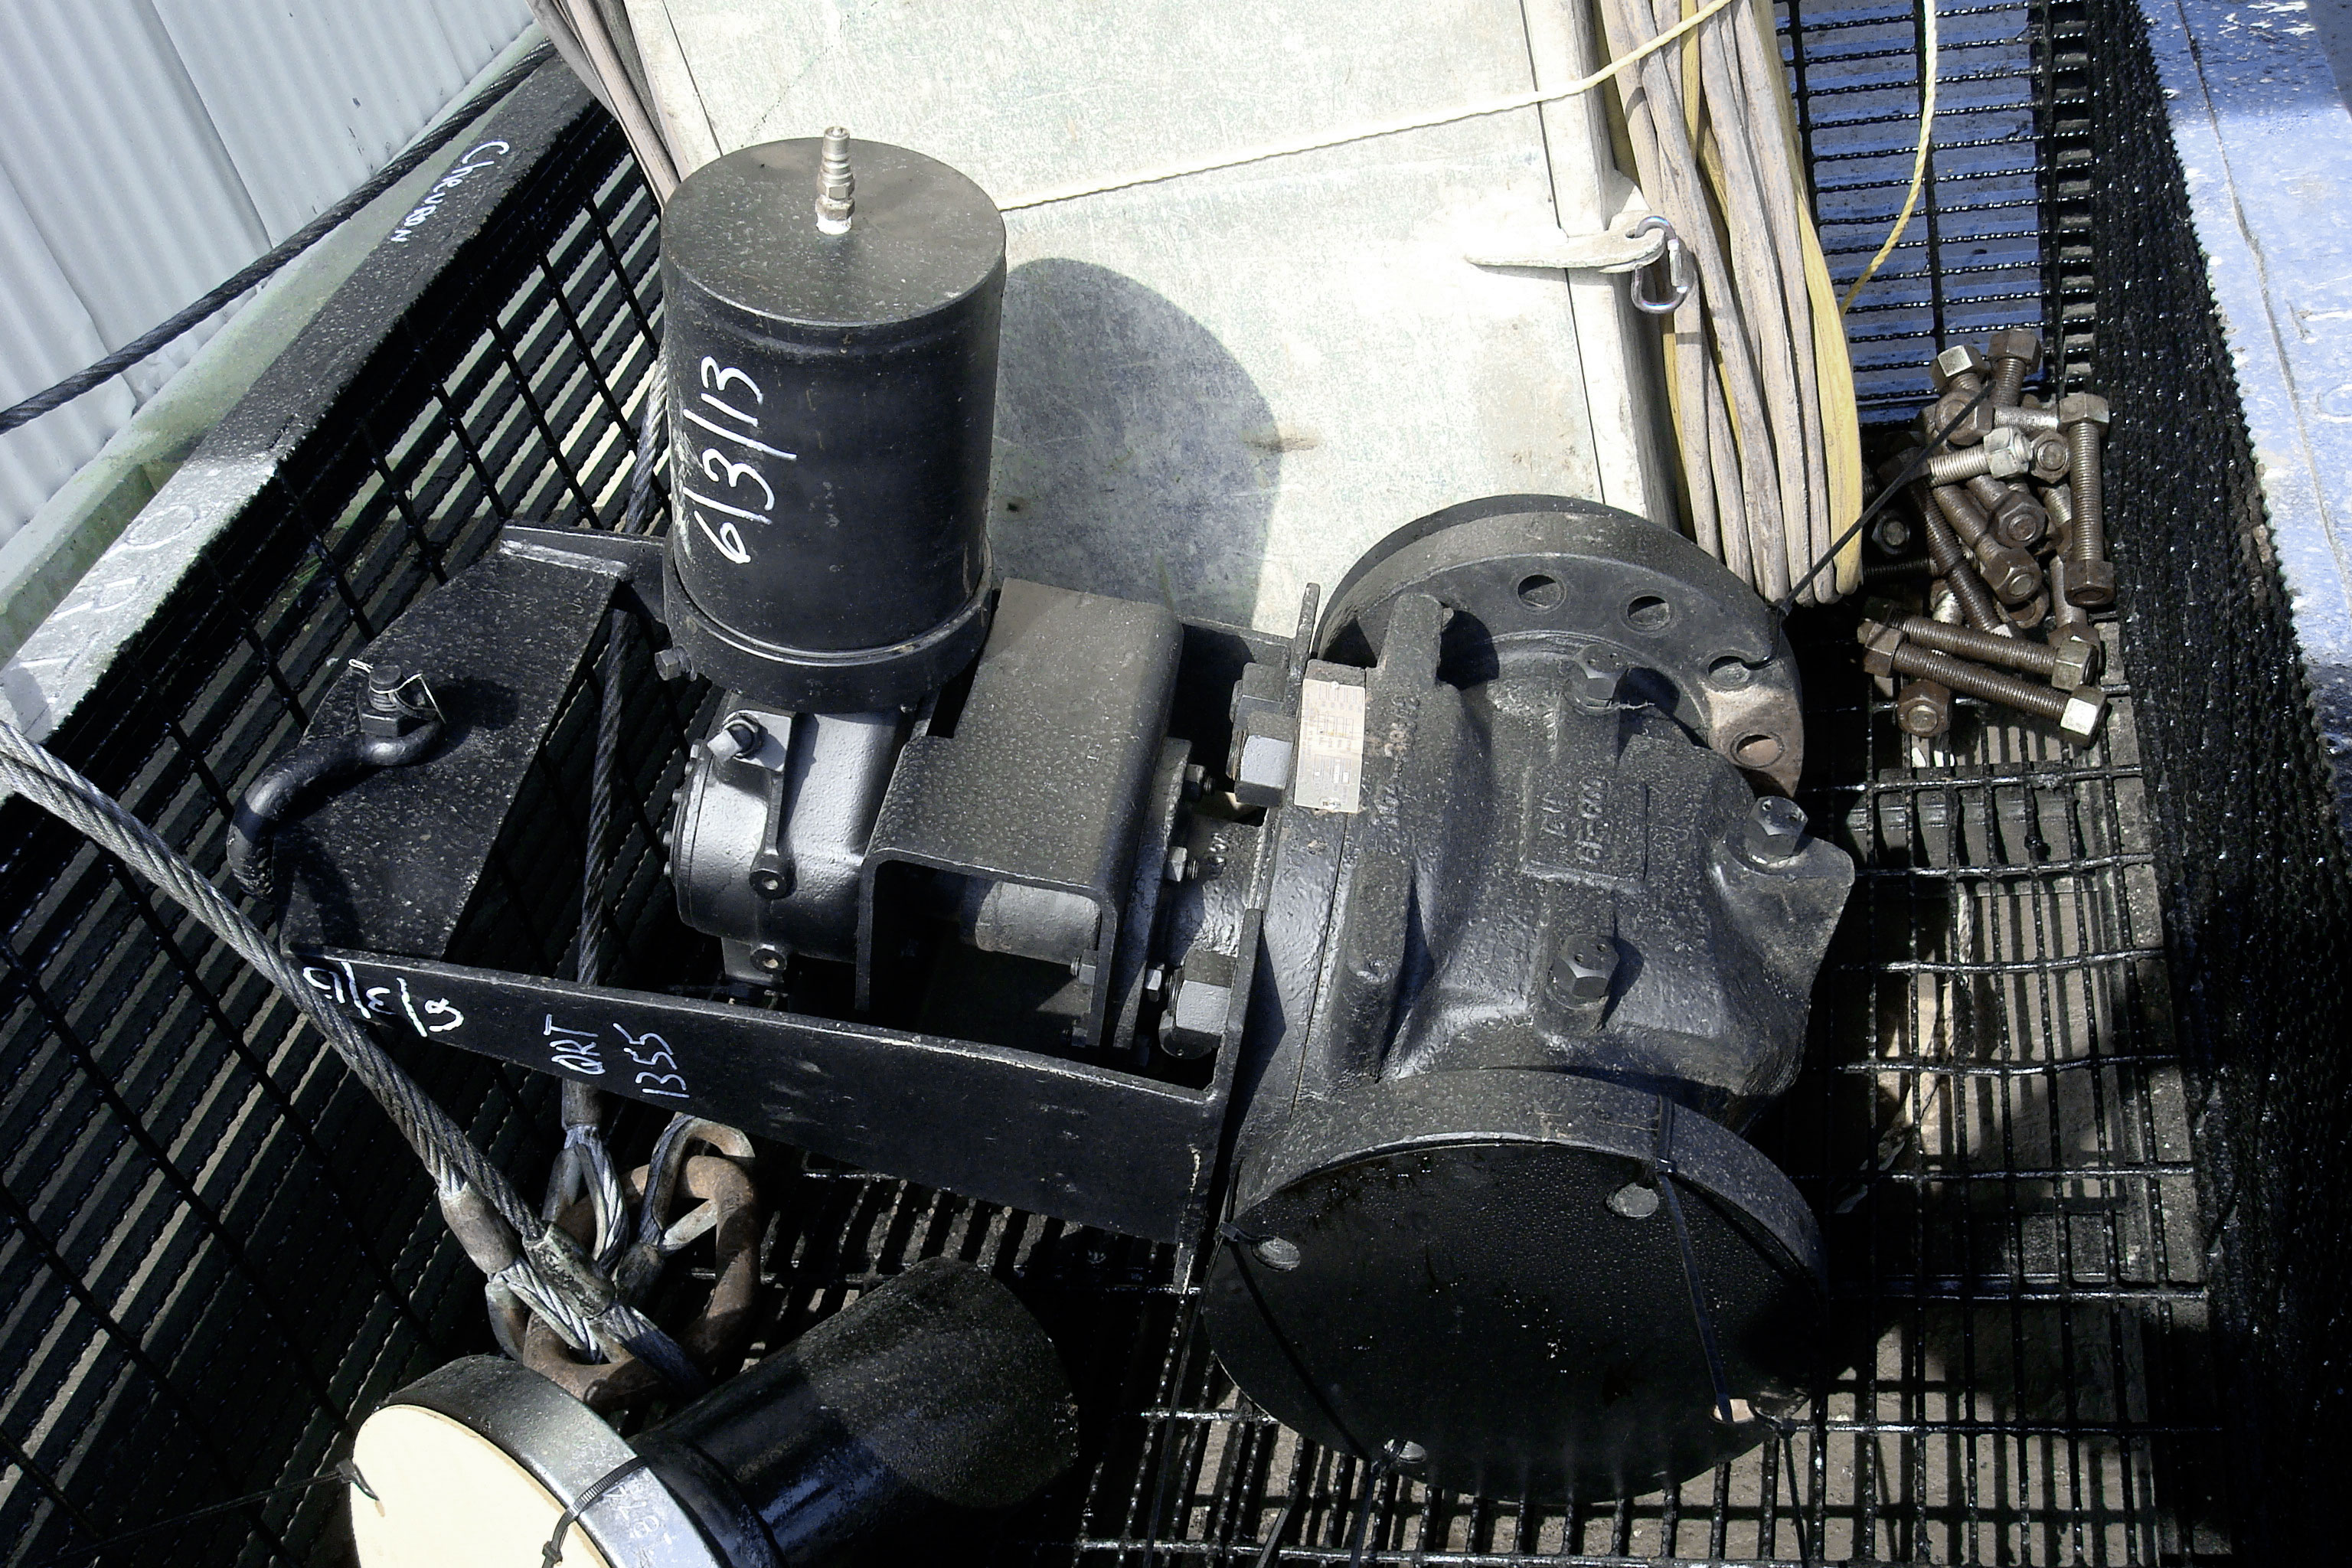 plus ten valve, studs and nuts basket